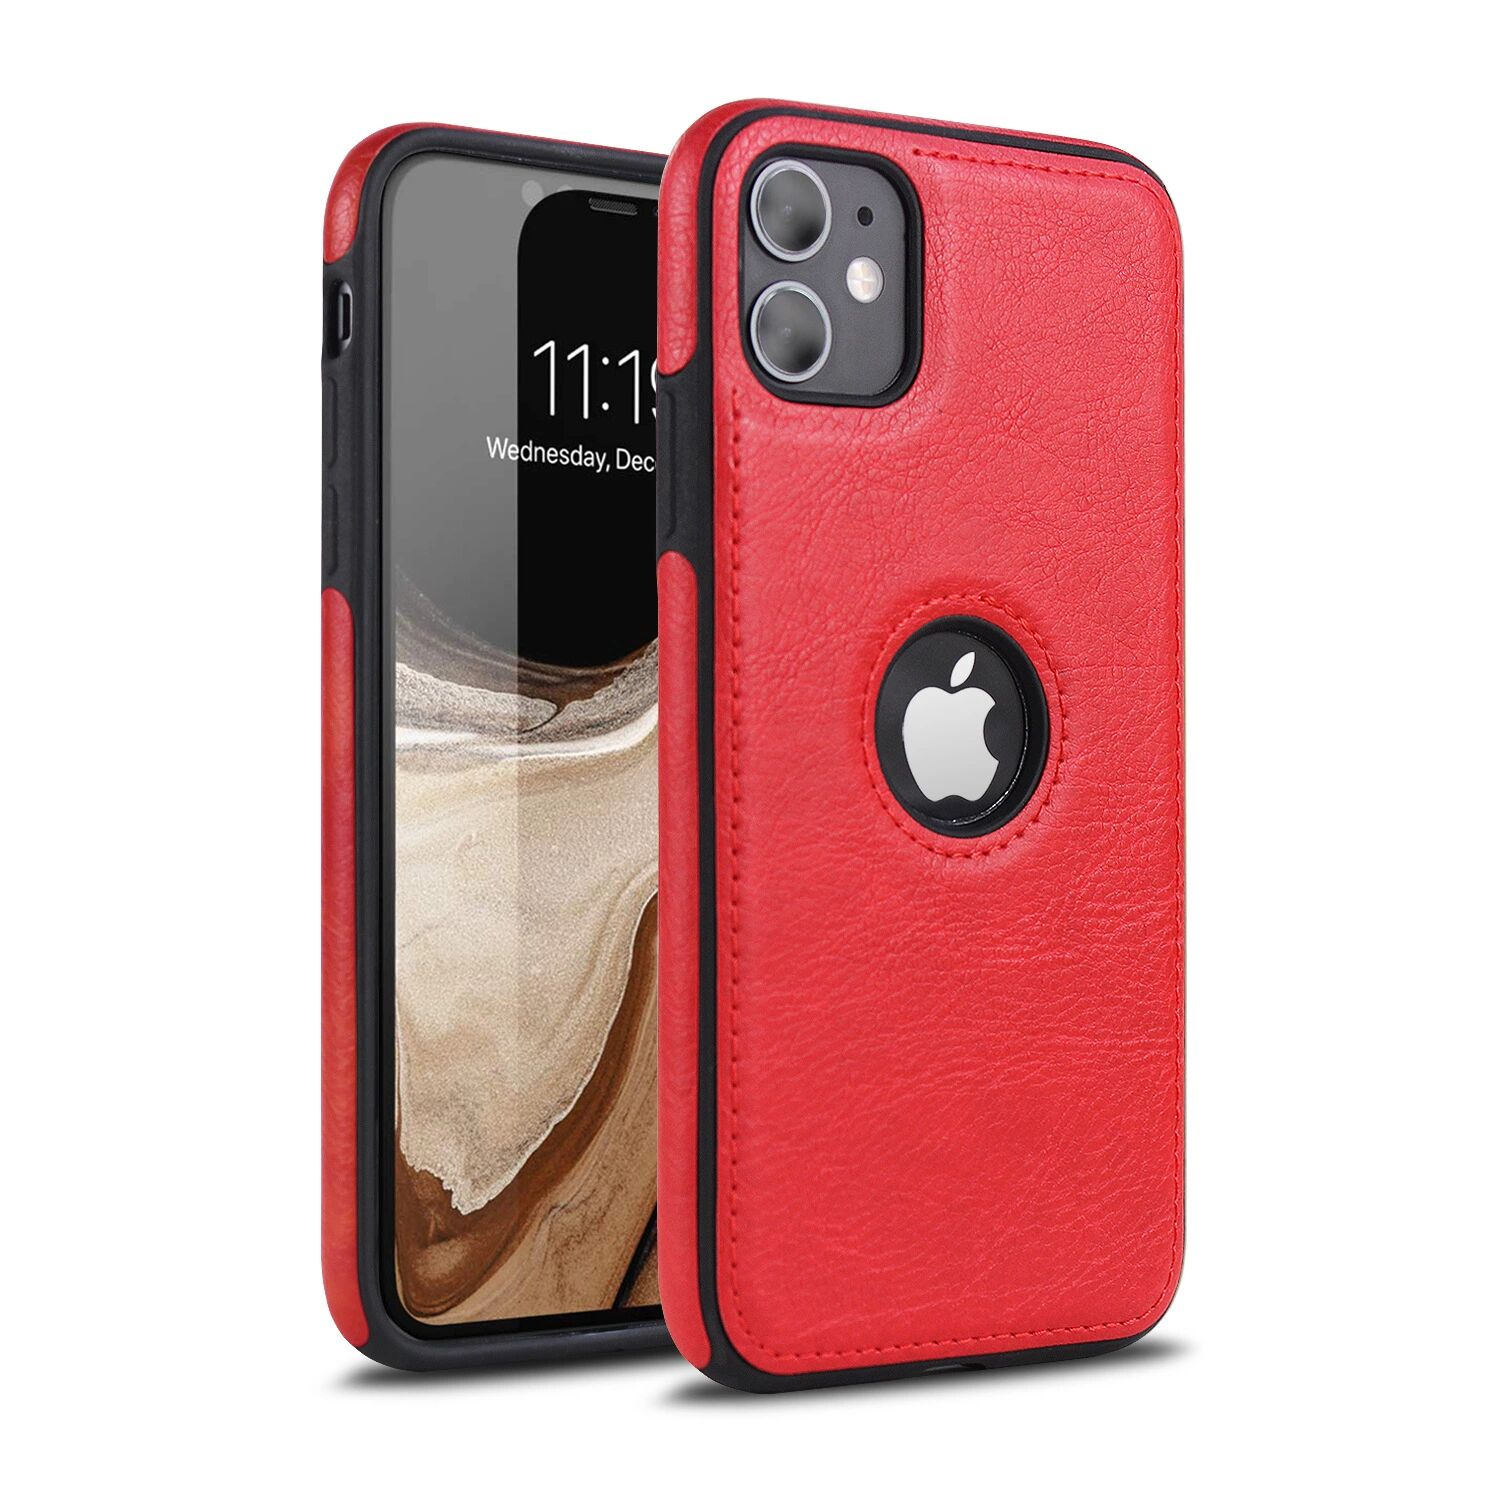 Applicable Car Line Skin Stitching Mobile Phone Skin Case For iPhone 11pro Max 2